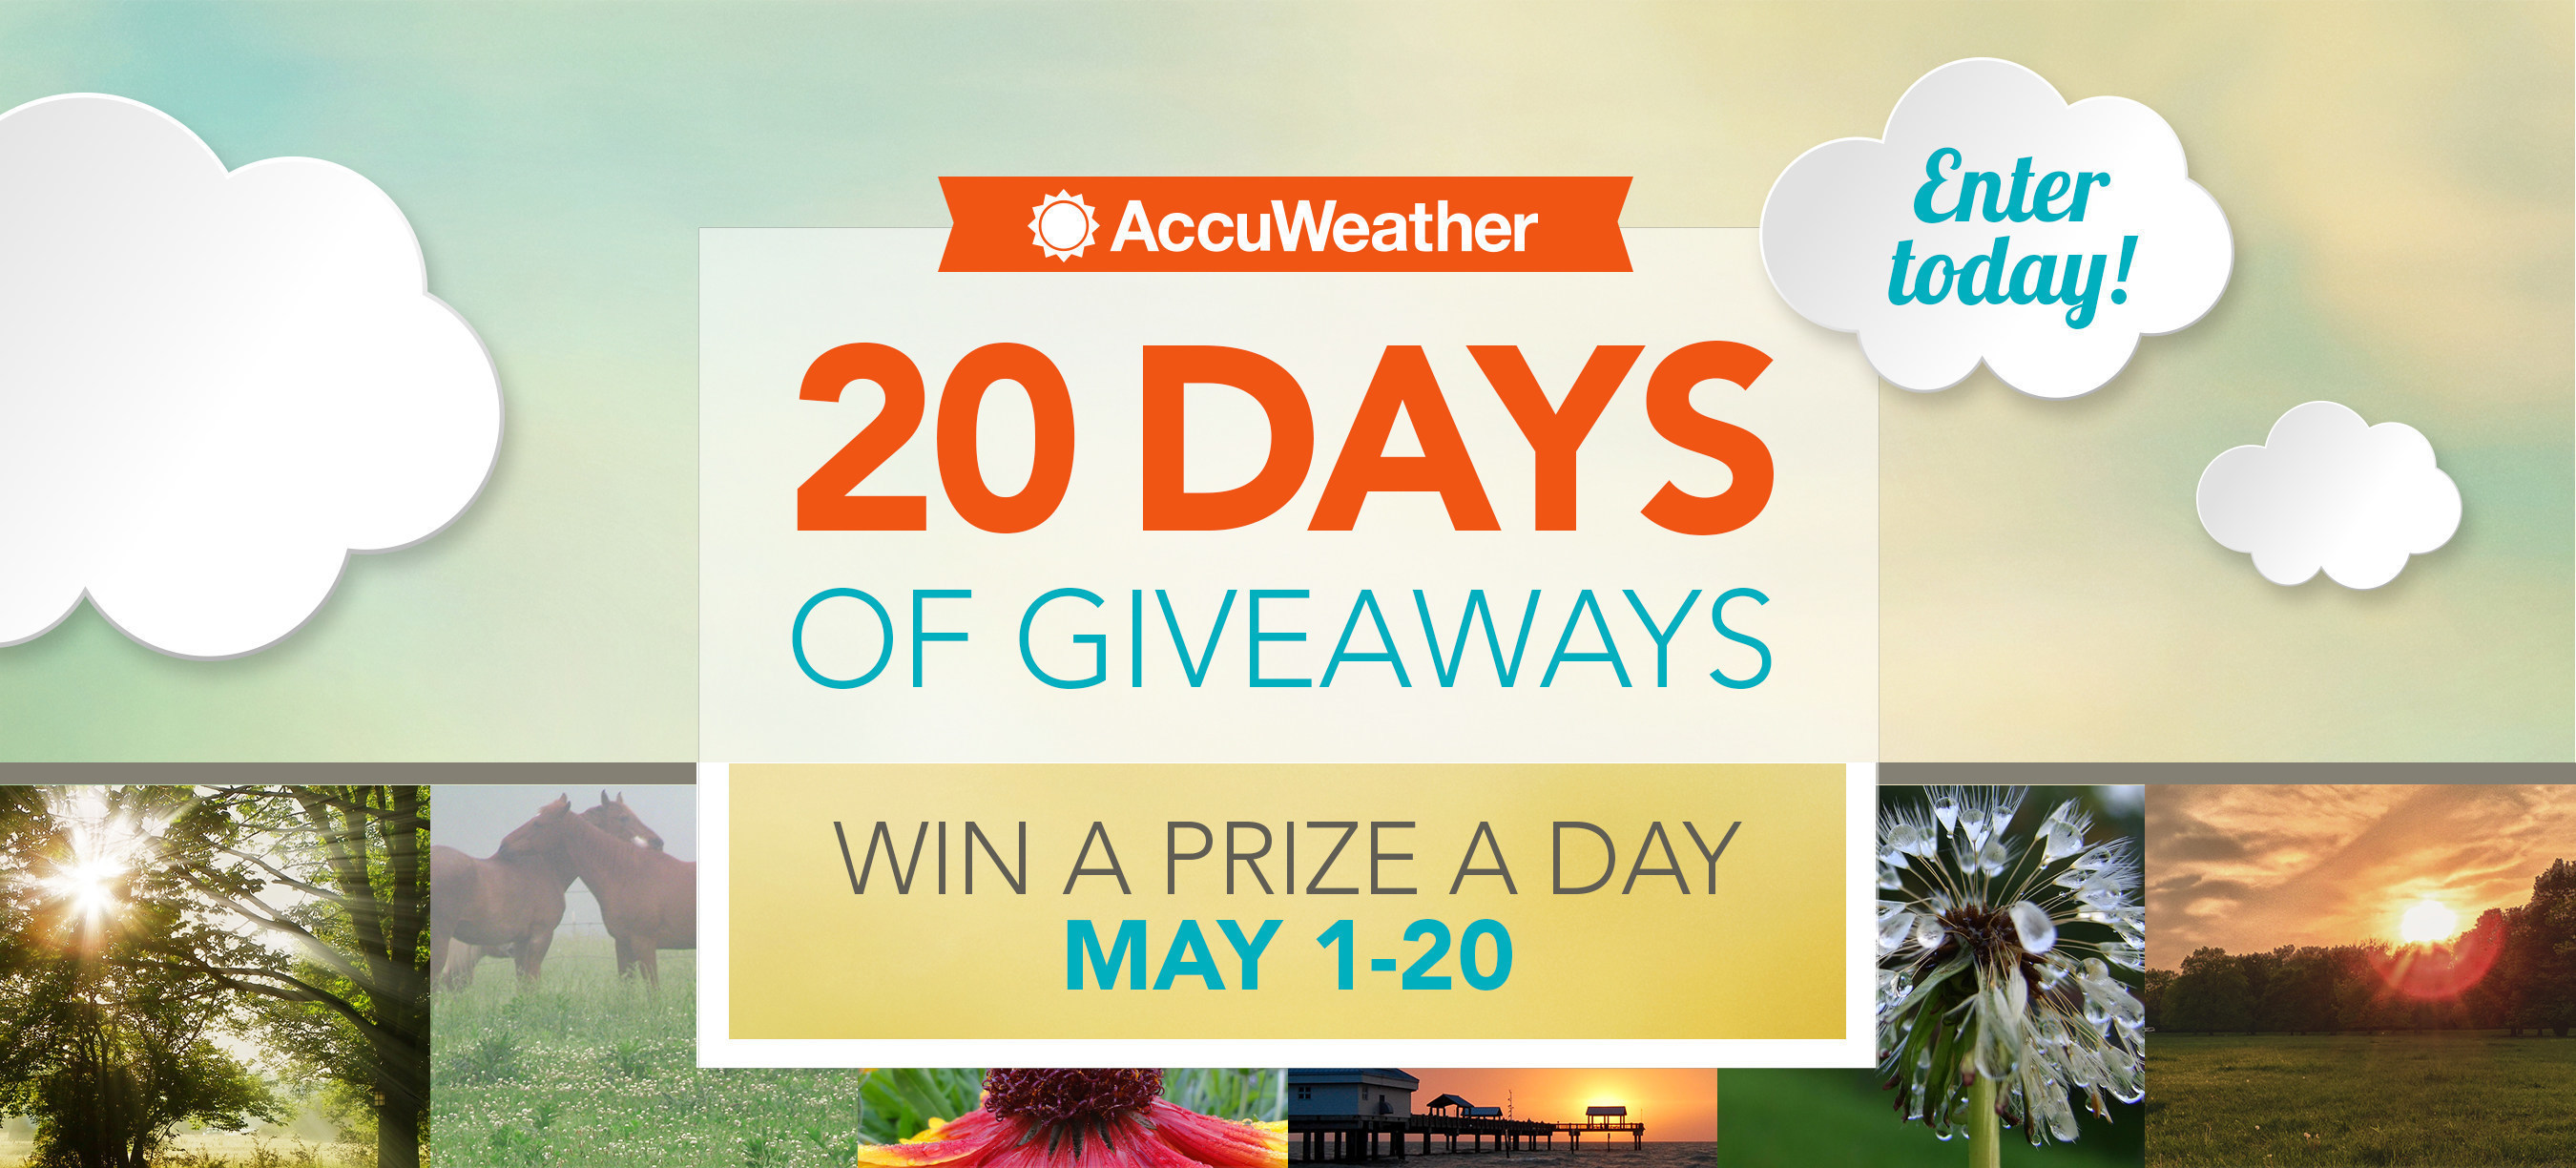 AccuWeather Celebrates the Launch of the new 24x7 AccuWeather Network with the '20-Days of Giveaways Sweepstakes' on Facebook